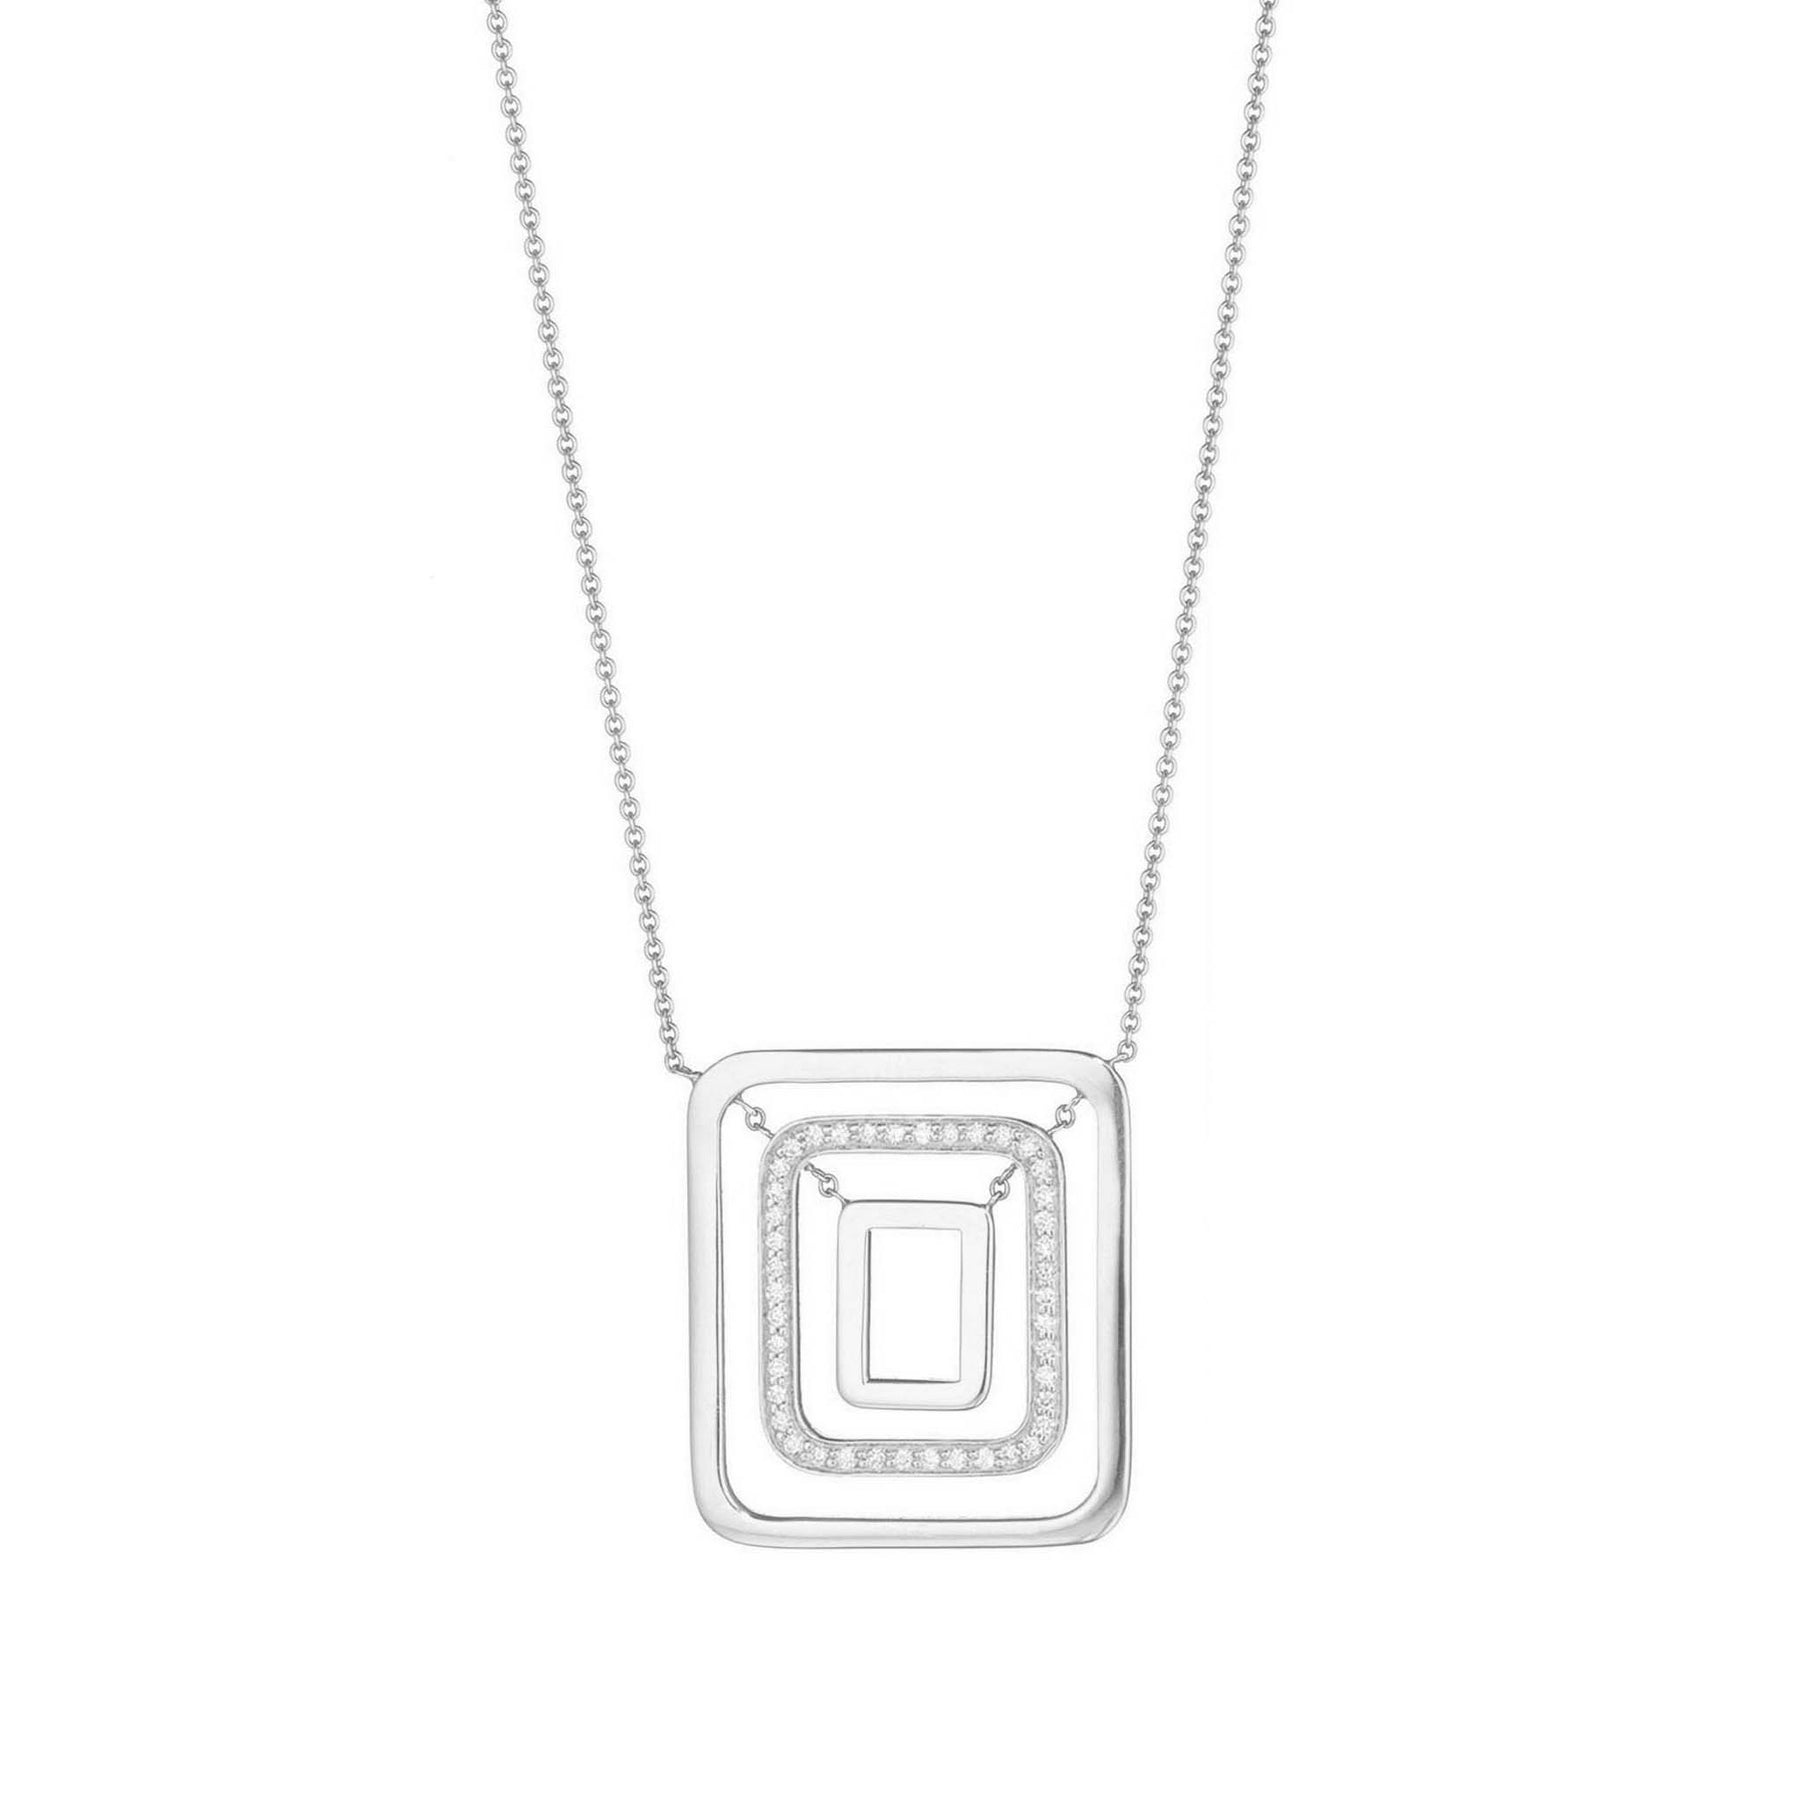 Mimi-So-Piece-Square-Swing-Diamond-Necklace_18k White Gold